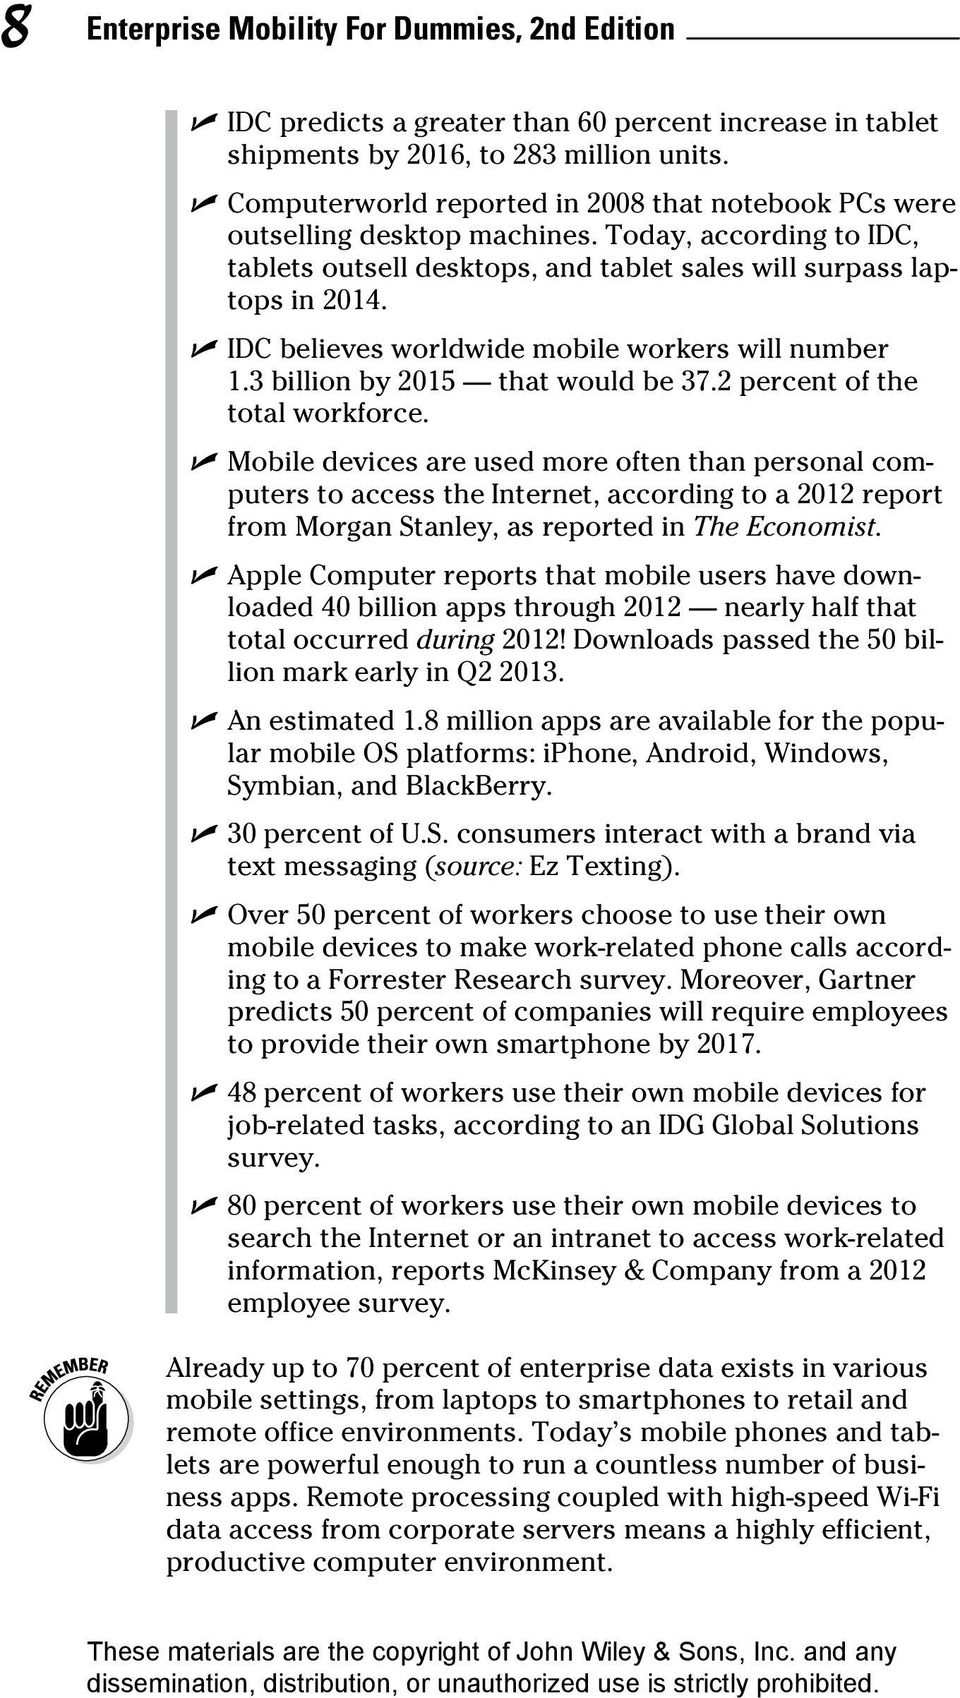 IDC believes worldwide mobile workers will number 1.3 billion by 2015 that would be 37.2 percent of the total workforce.